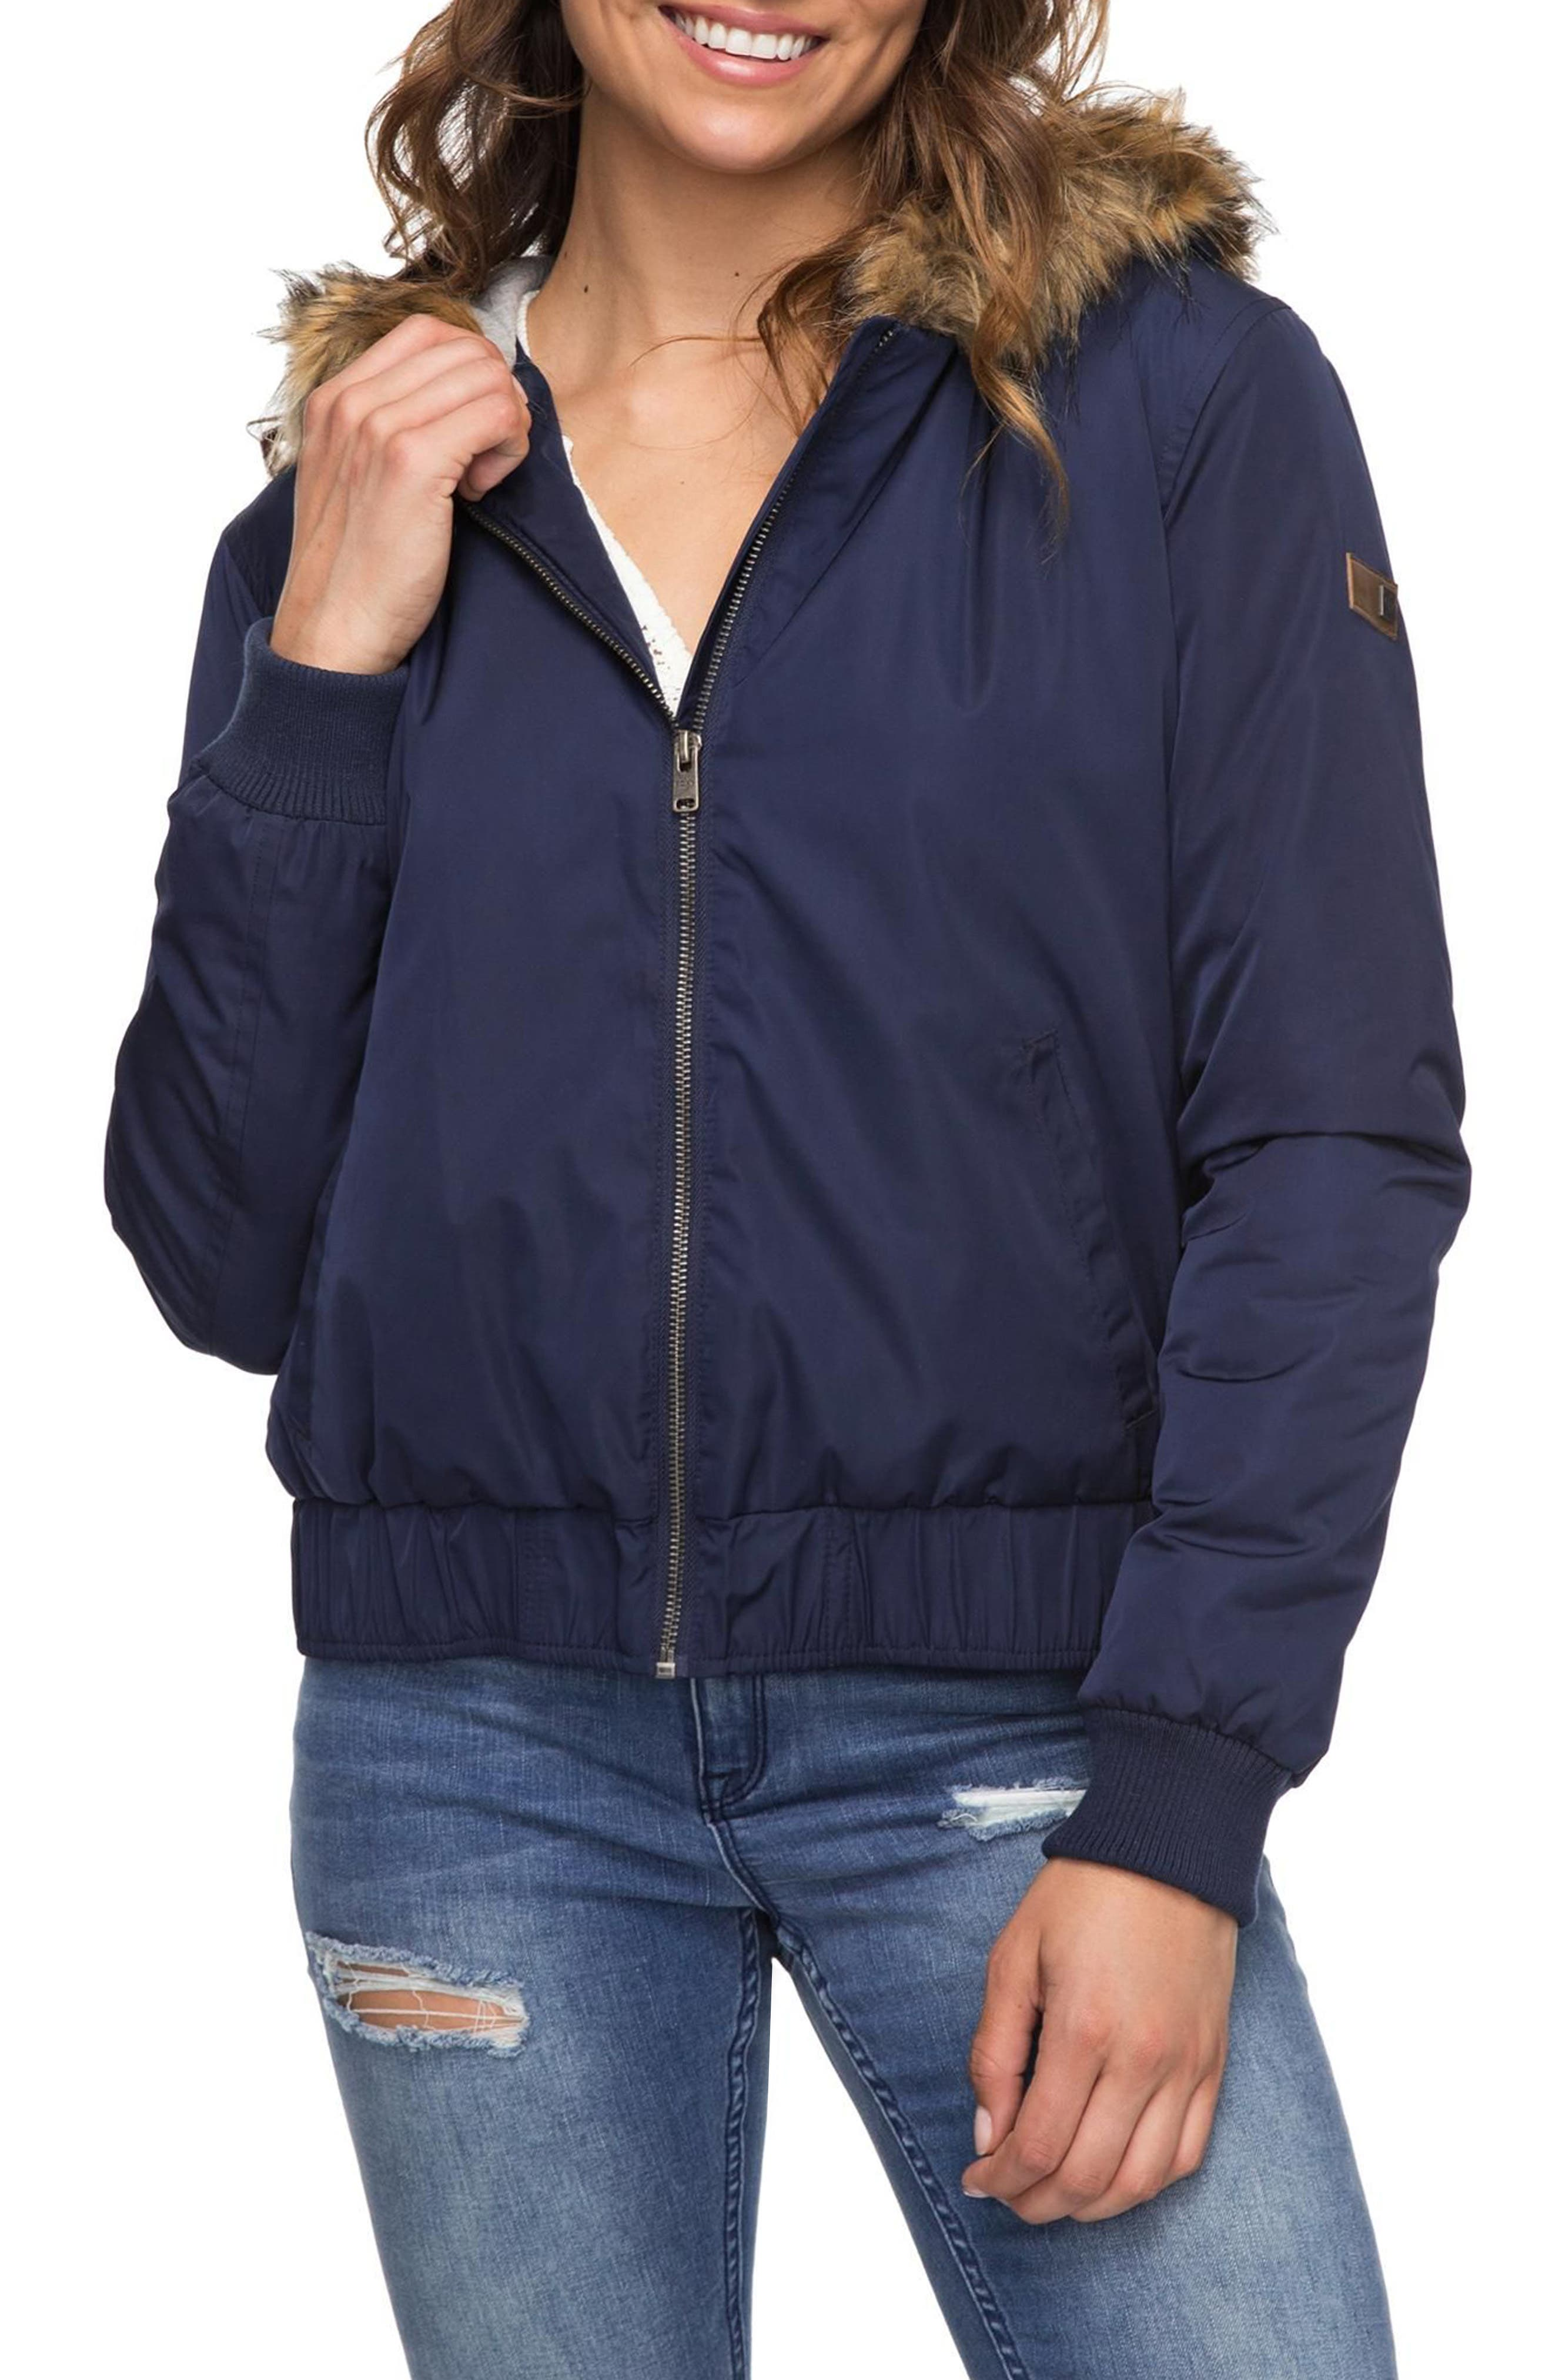 Oh Reely Faux Fur Bomber Jacket,                             Alternate thumbnail 3, color,                             Dress Blues